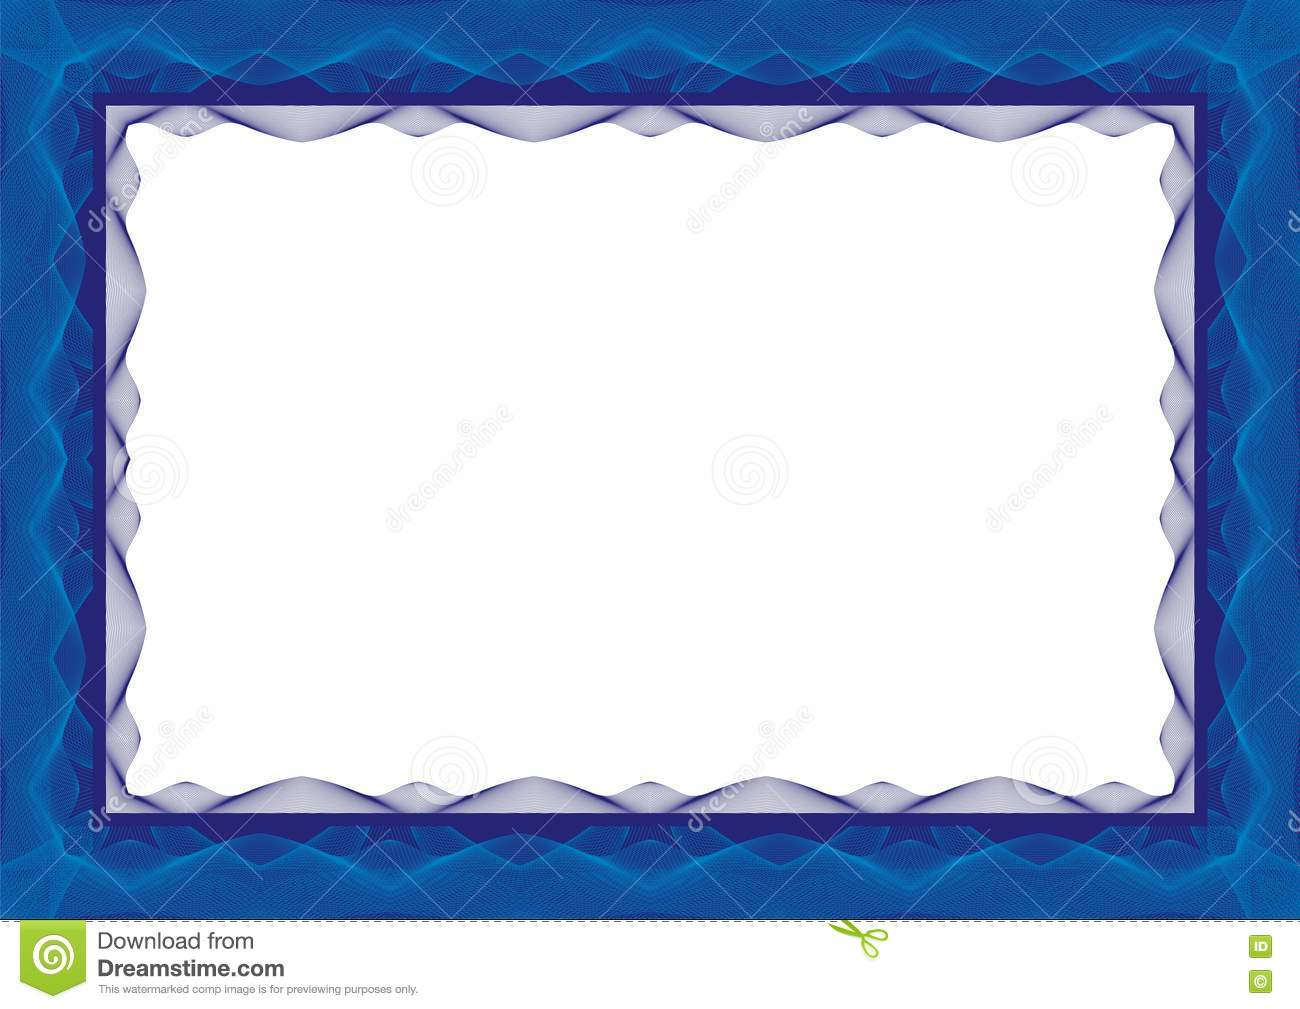 download blue certificate or diploma template frame border stock vector illustration of award